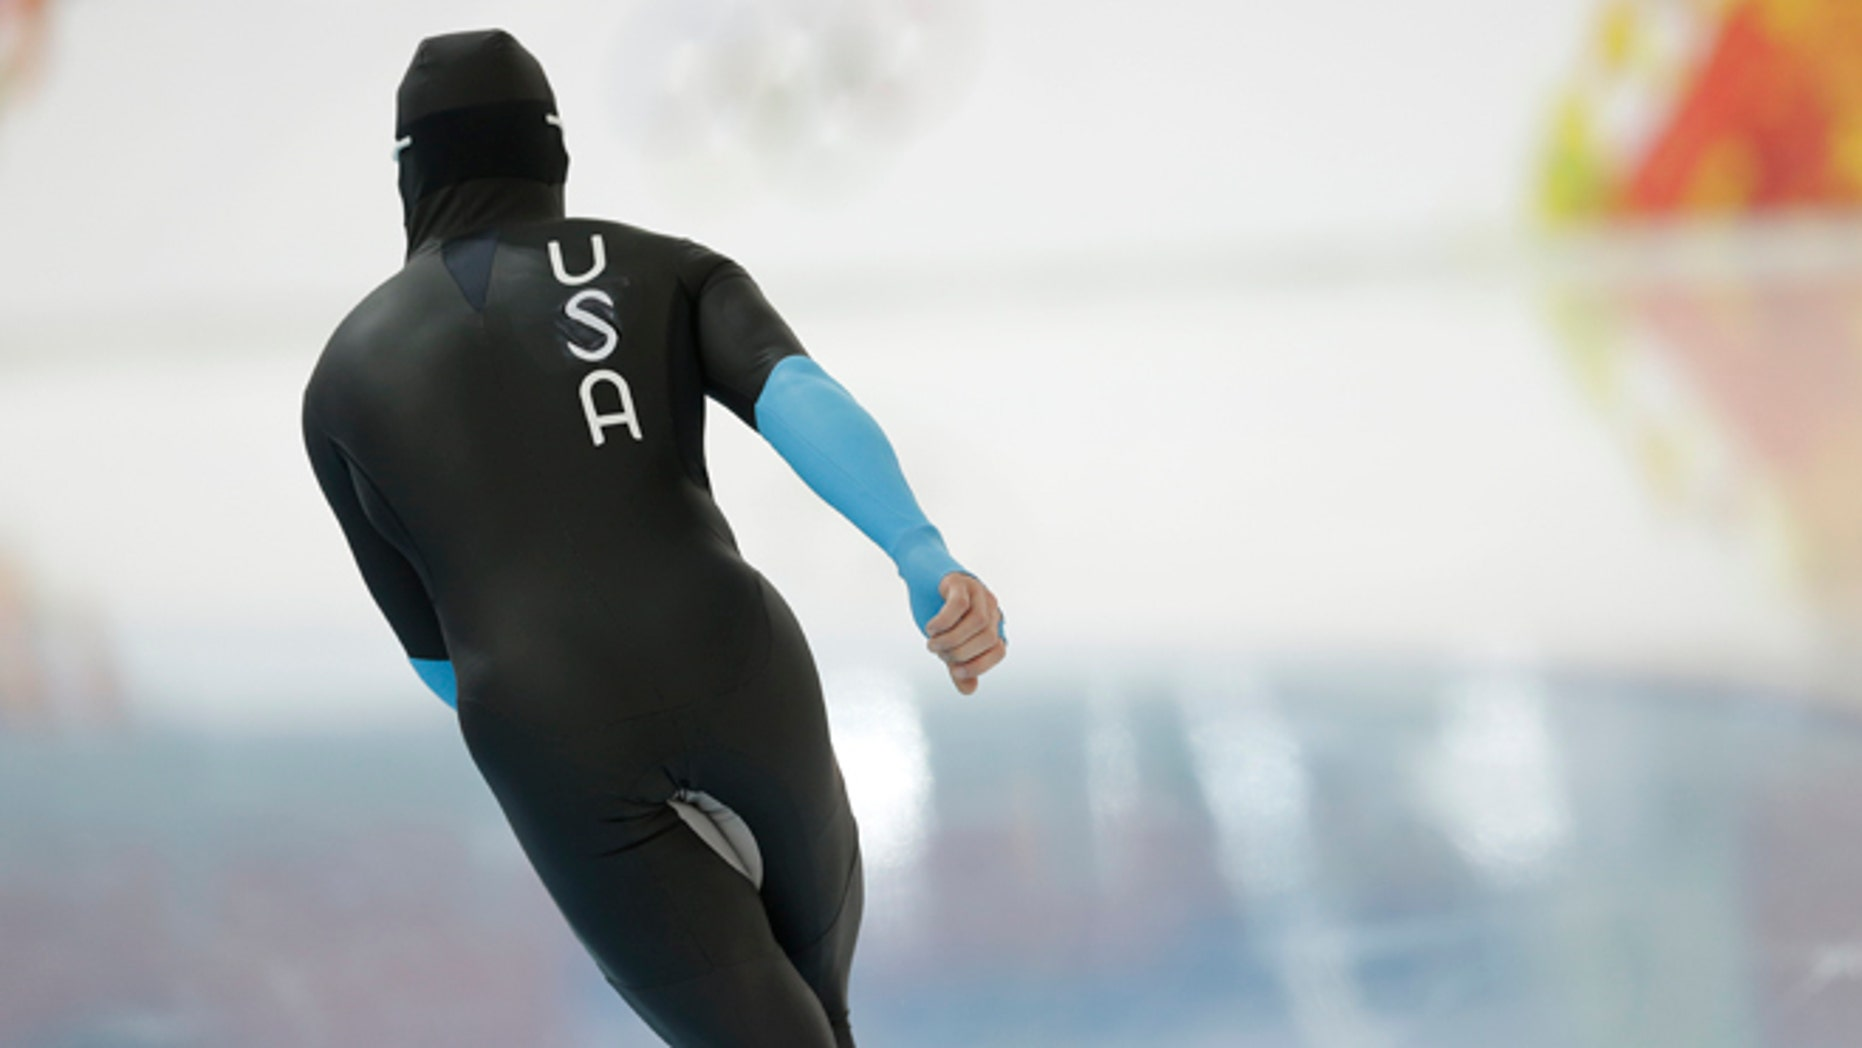 U.S. speedskater Joey Mantia warms-up wearing the old World Cup race suit, prior to the men's 1,500-meter race at the Adler Arena Skating Center during the 2014 Winter Olympics in Sochi, Russia, Saturday, Feb. 15, 2014. U.S. skaters are looking to bounce back from an awful start to their Olympics by slipping back into their old suits that should have been made obsolete by new high-tech gear. (AP Photo/Patrick Semansky)